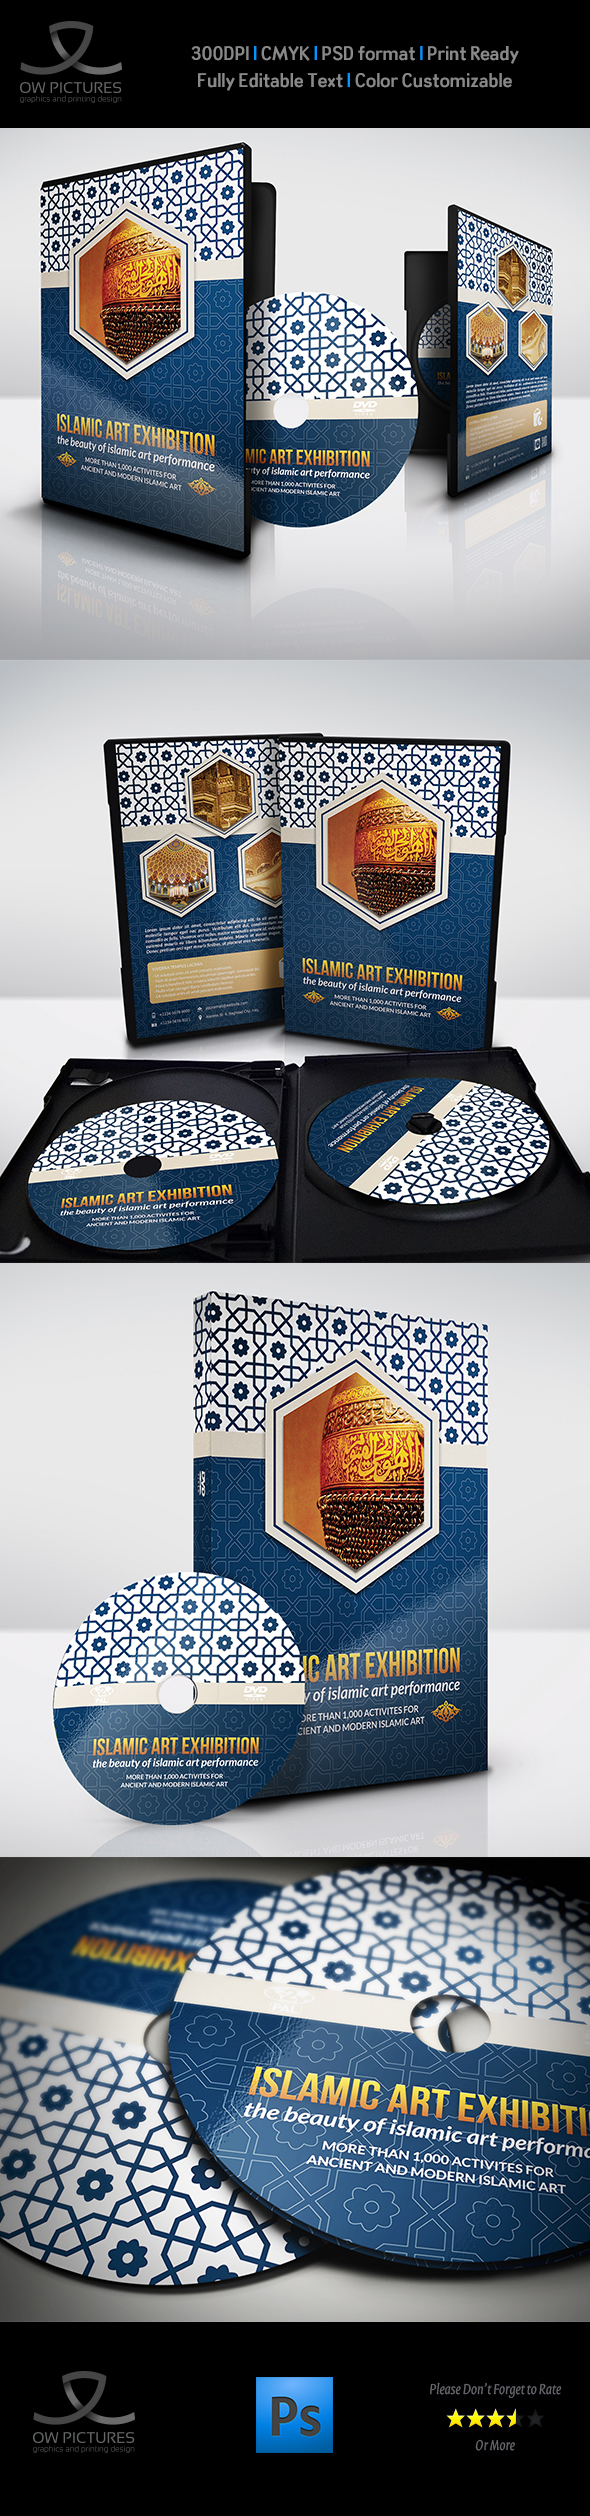 Dvd Cover Template | Owpictures Islamic Art Exhibition Dvd Cover And Label Template